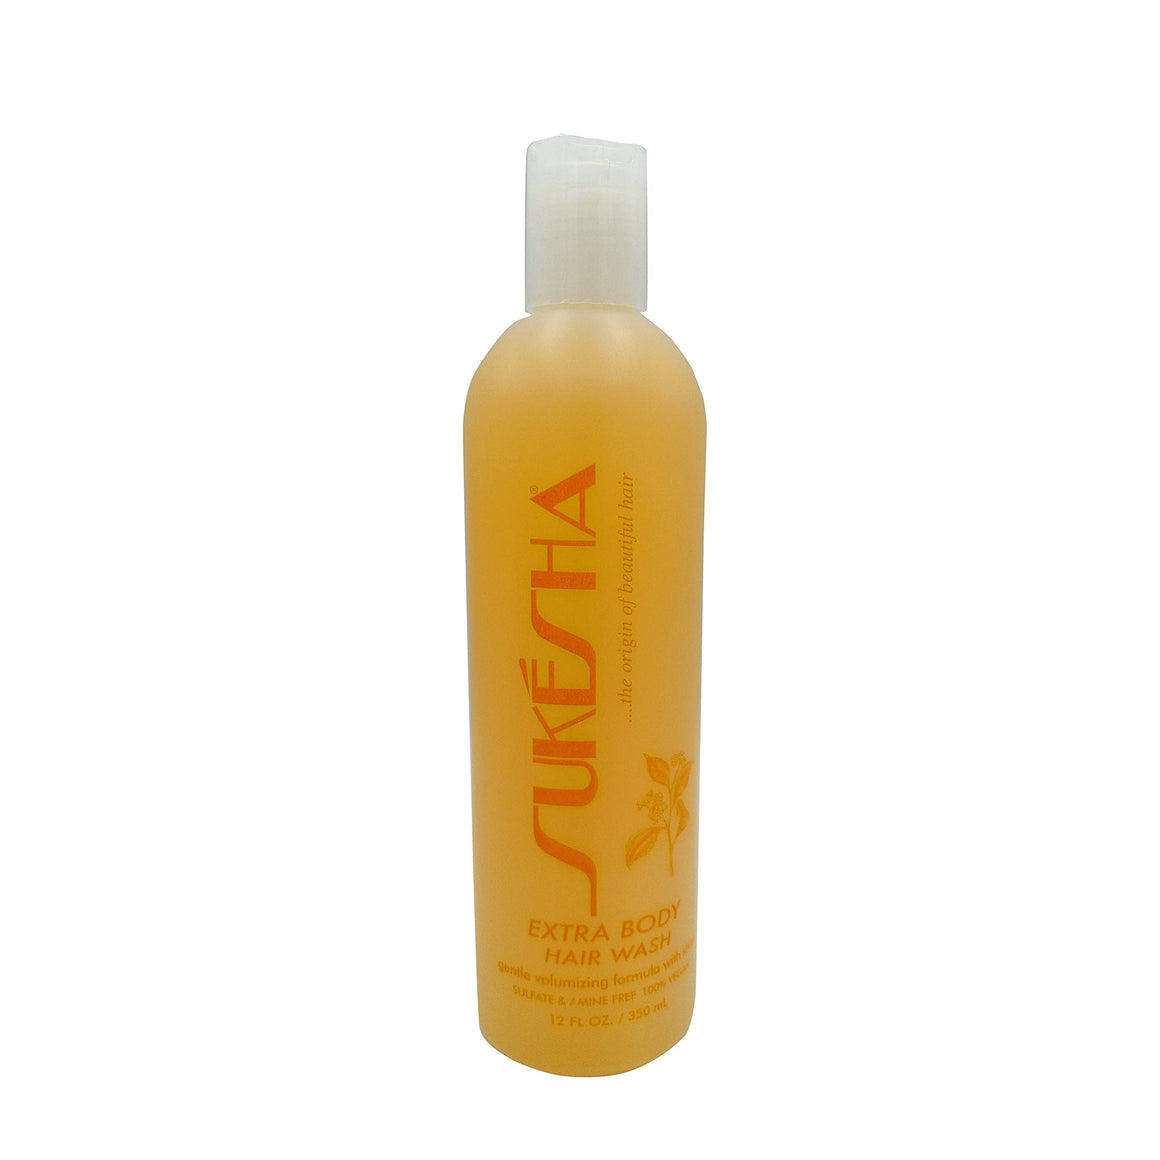 Sukesha Extra Body Hair Wash by All-Nutrient